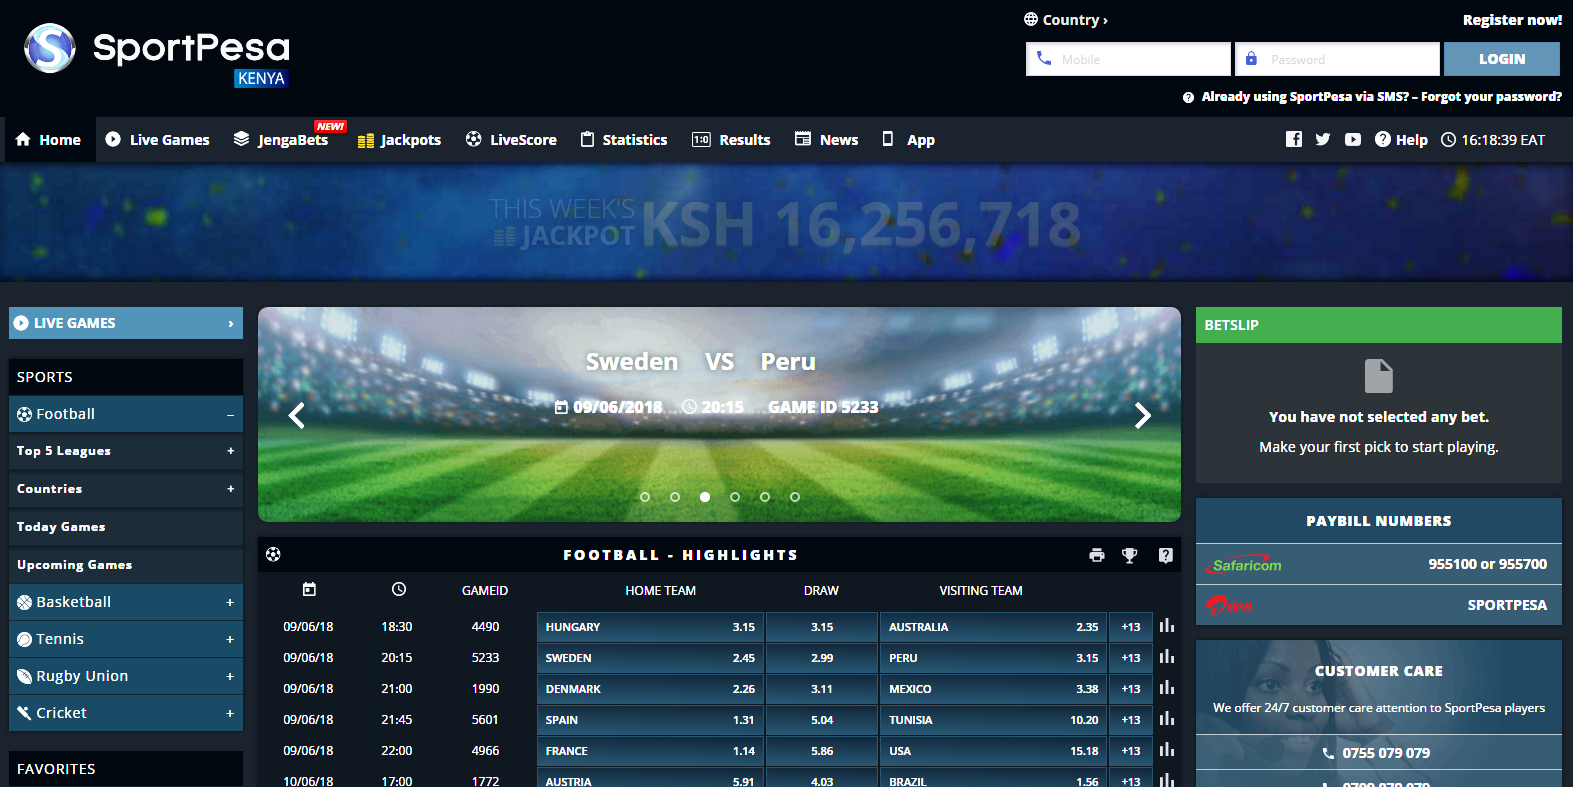 How to Create, Retrieve, and Reset your Sportpesa Account